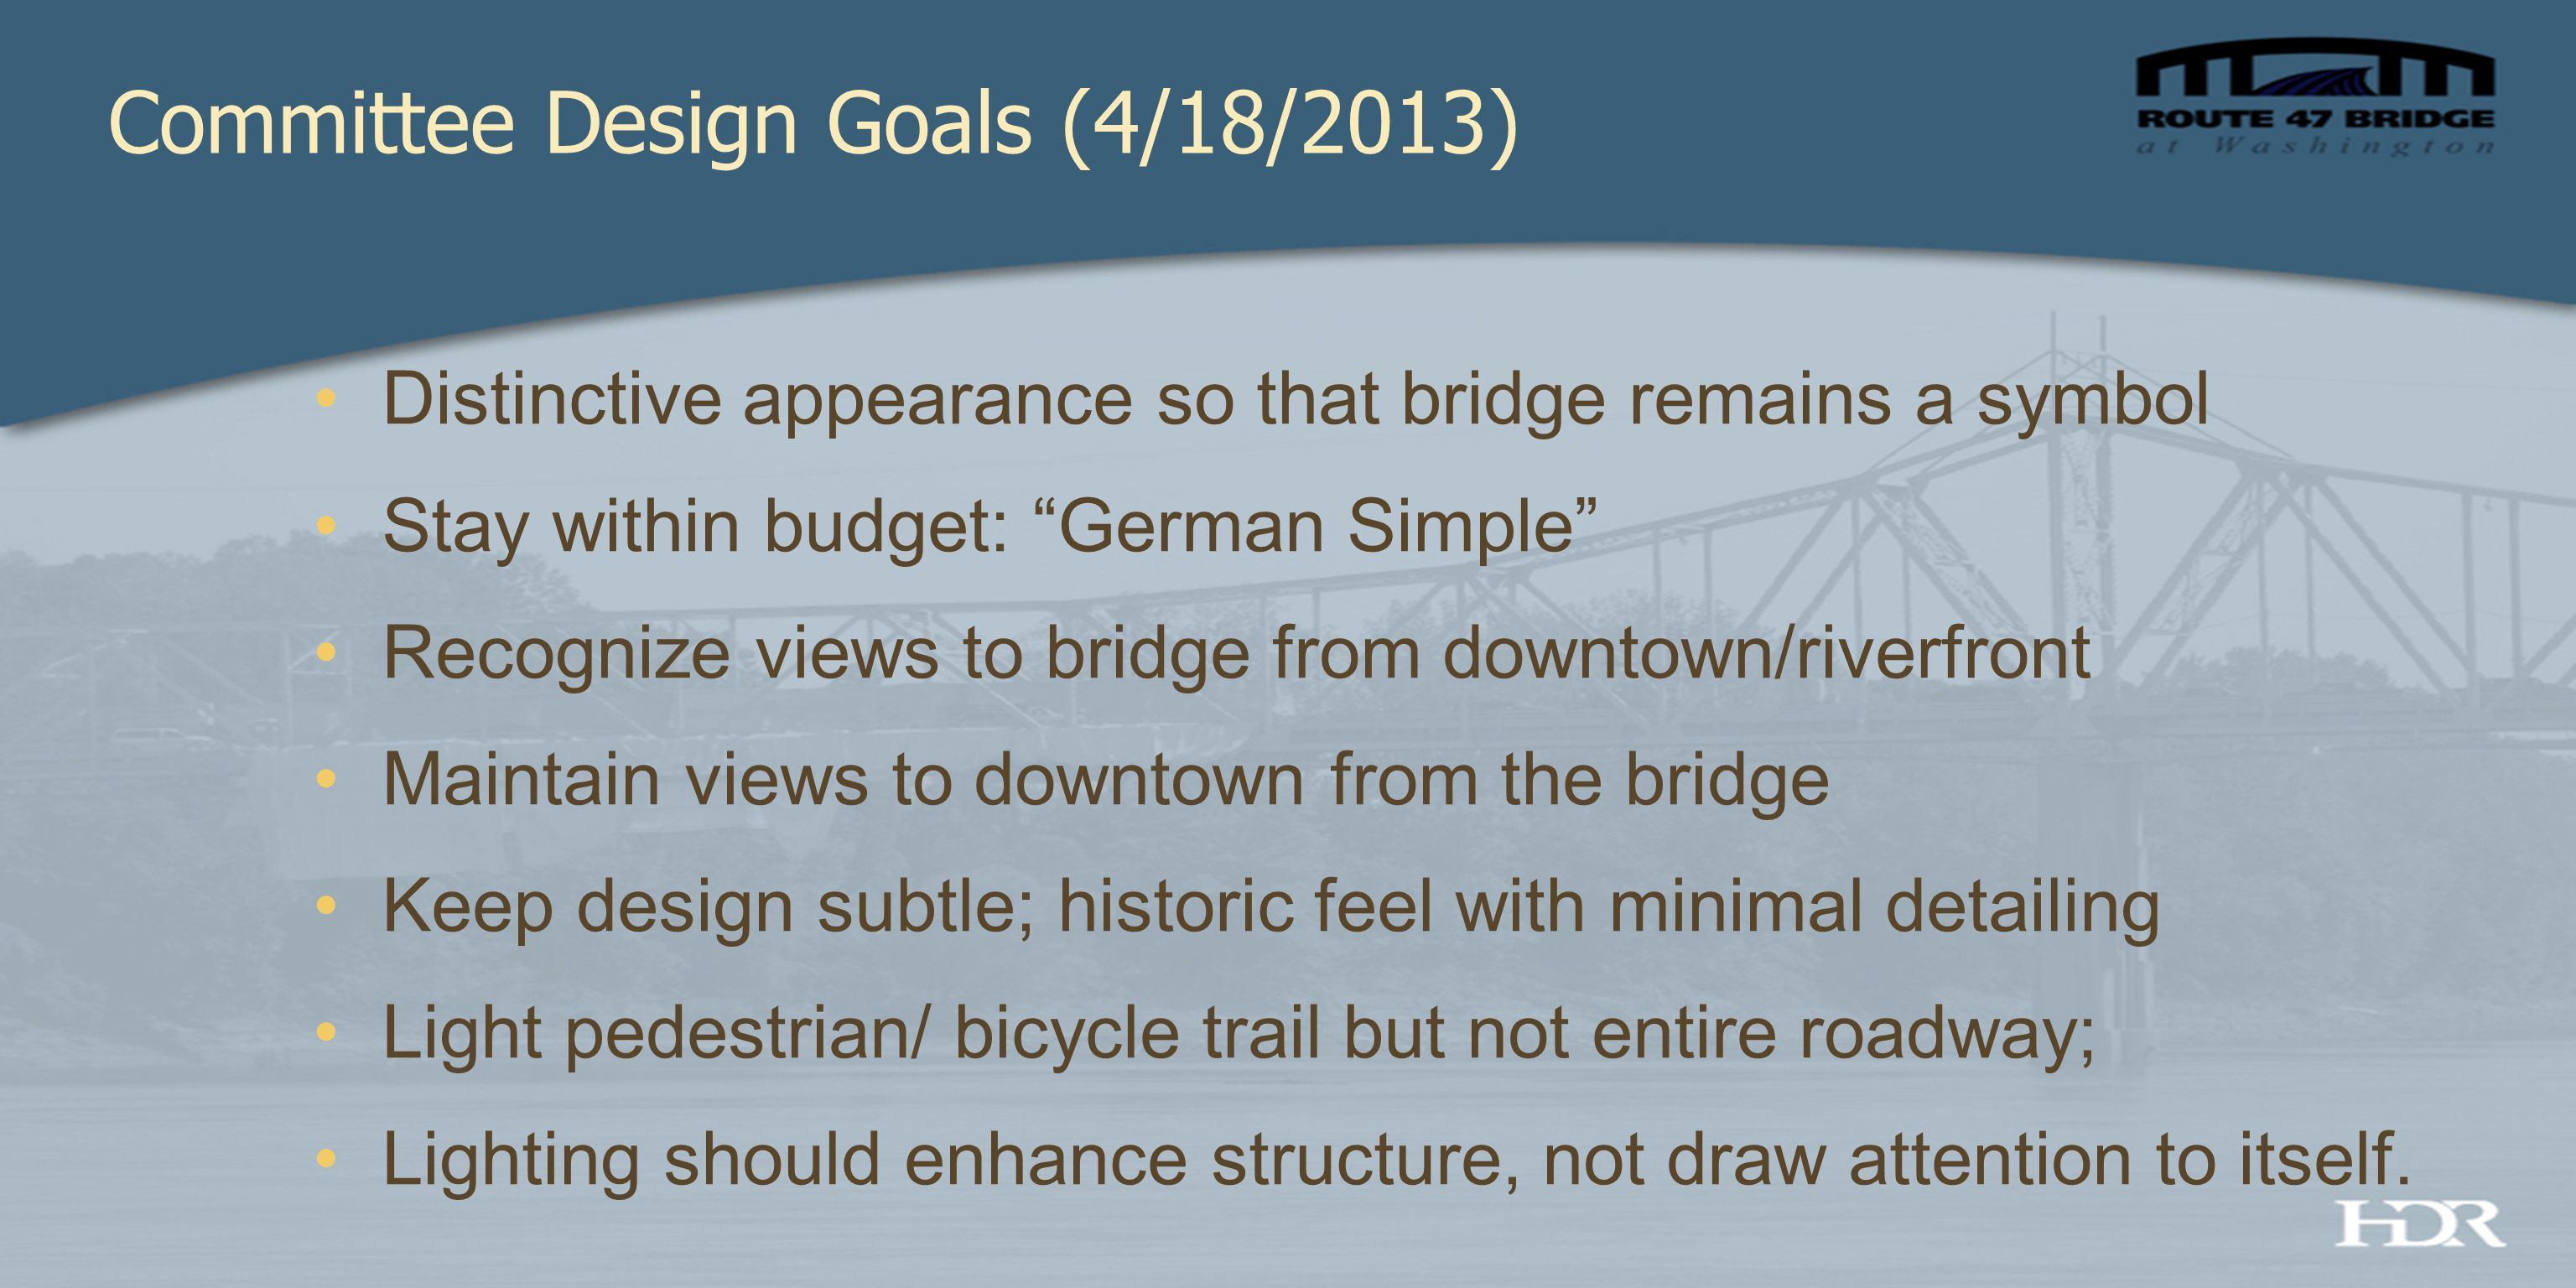 Distinctive appearance so that bridge remains a symbol Stay within budget: German Simple Recognize views to bridge from downtown/riverfront Maintain views to downtown from the bridge Keep design subtle; historic feel with minimal detailing Light pedestrian/ bicycle trail but not entire roadway; Lighting should enhance structure, not draw attention to itself.